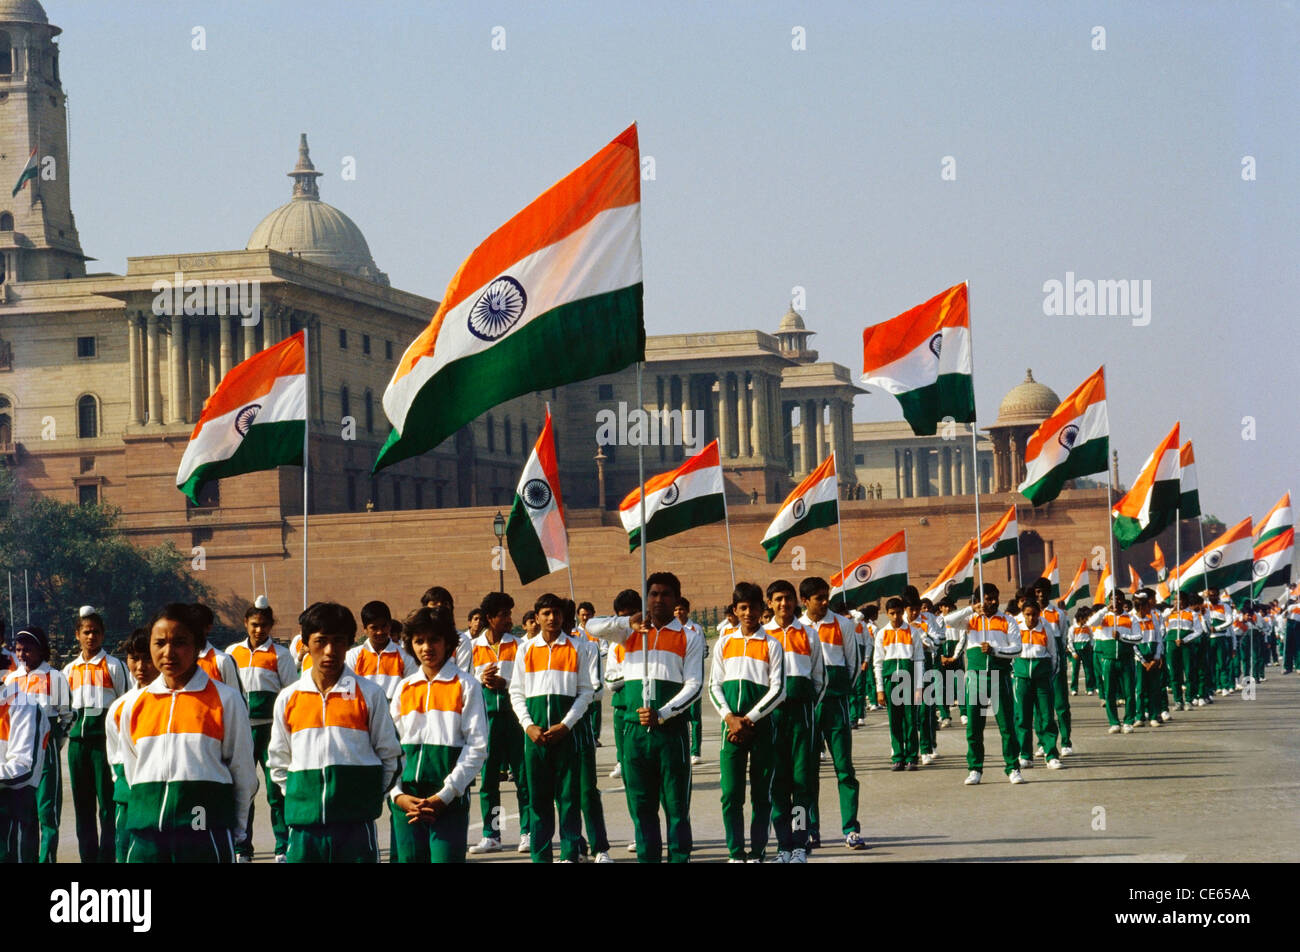 Flag Festival India: Children Parade Holding Indian Flags On Republic Day